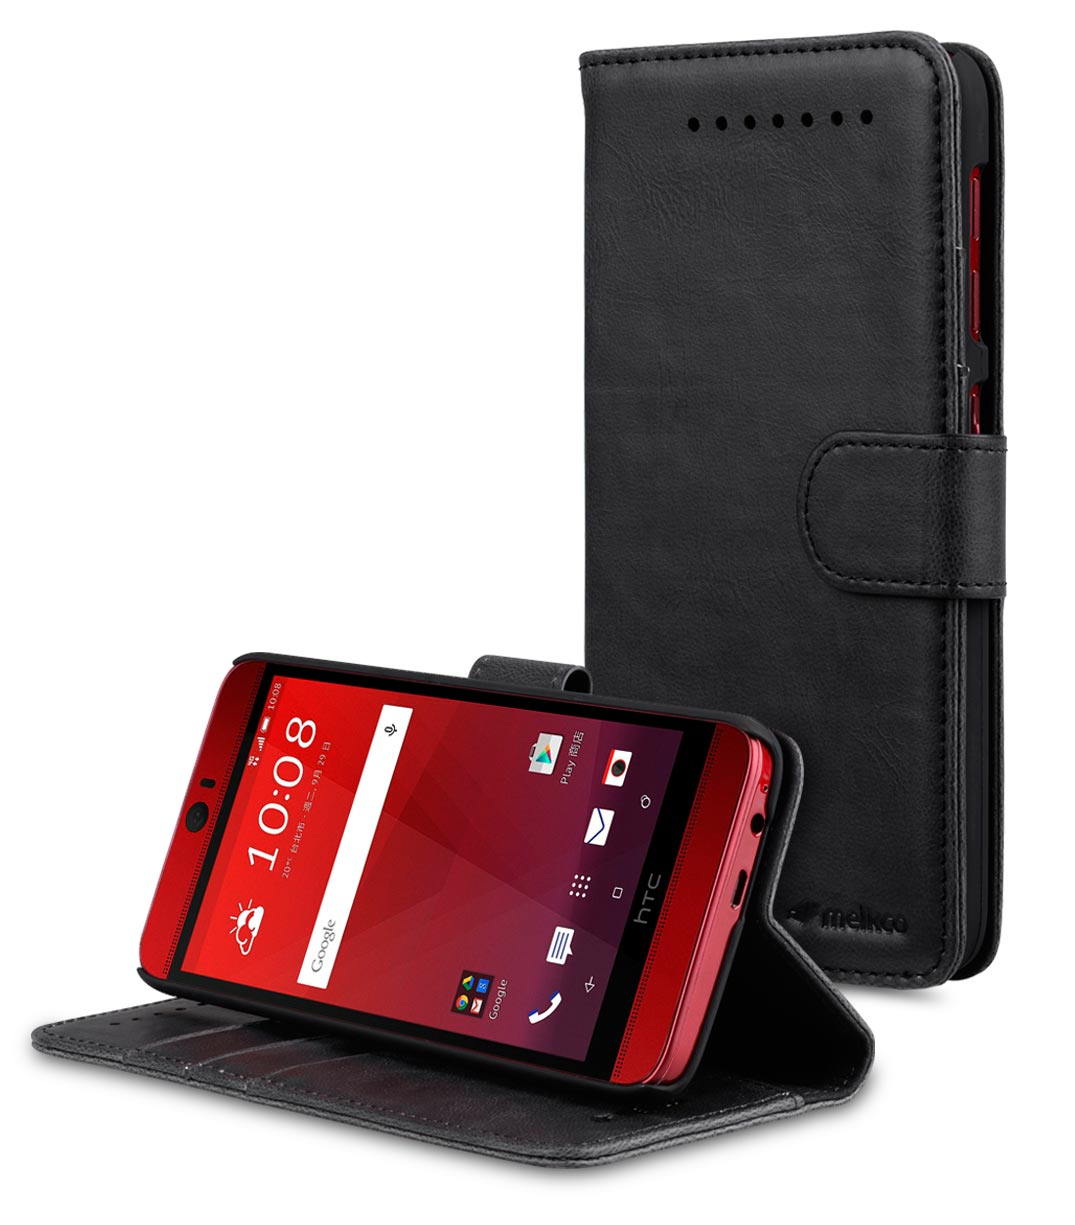 PU Leather Case for HTC Butterfly 3 - Wallet-Stand Book Type